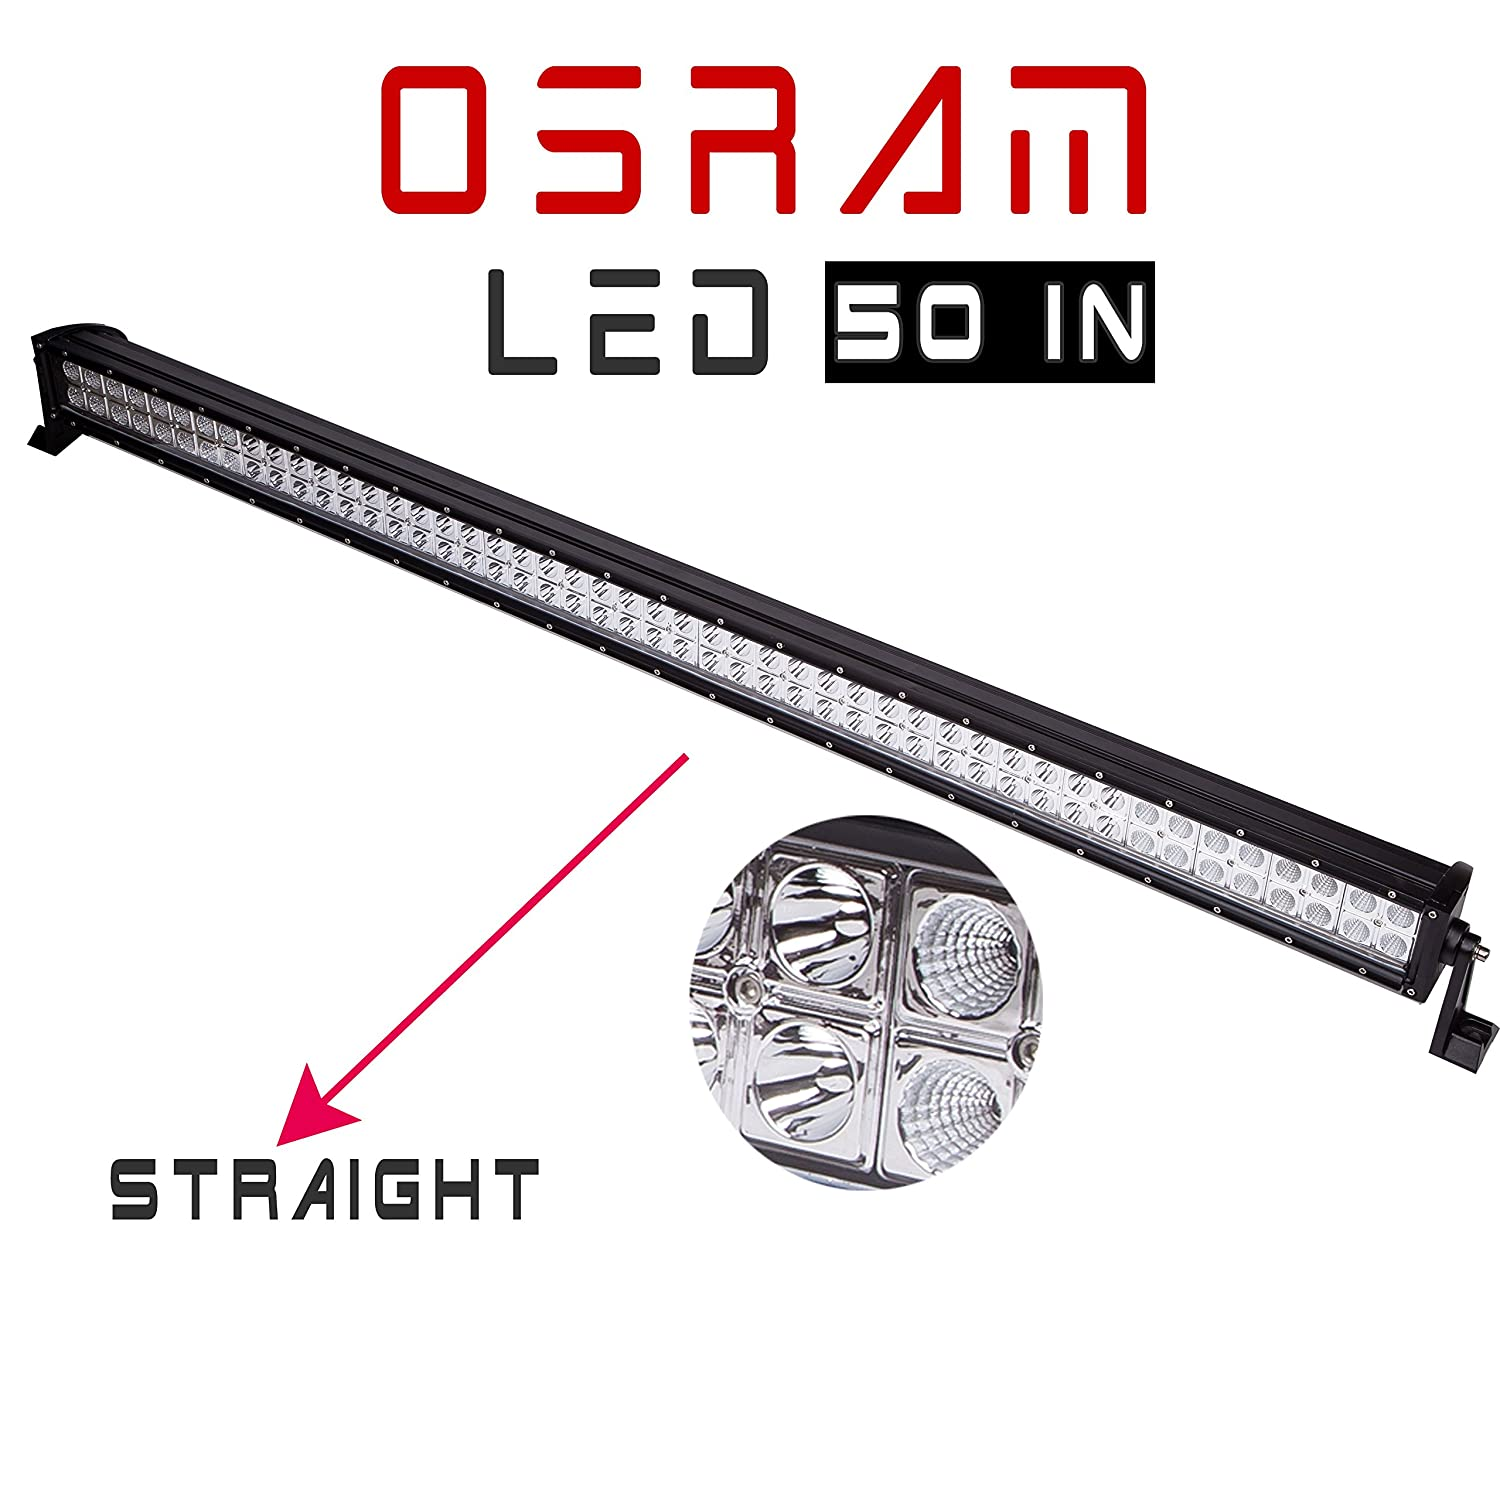 led light bar spot flood for hummer h3 1 lead remote control wiring switch kit 611553554287